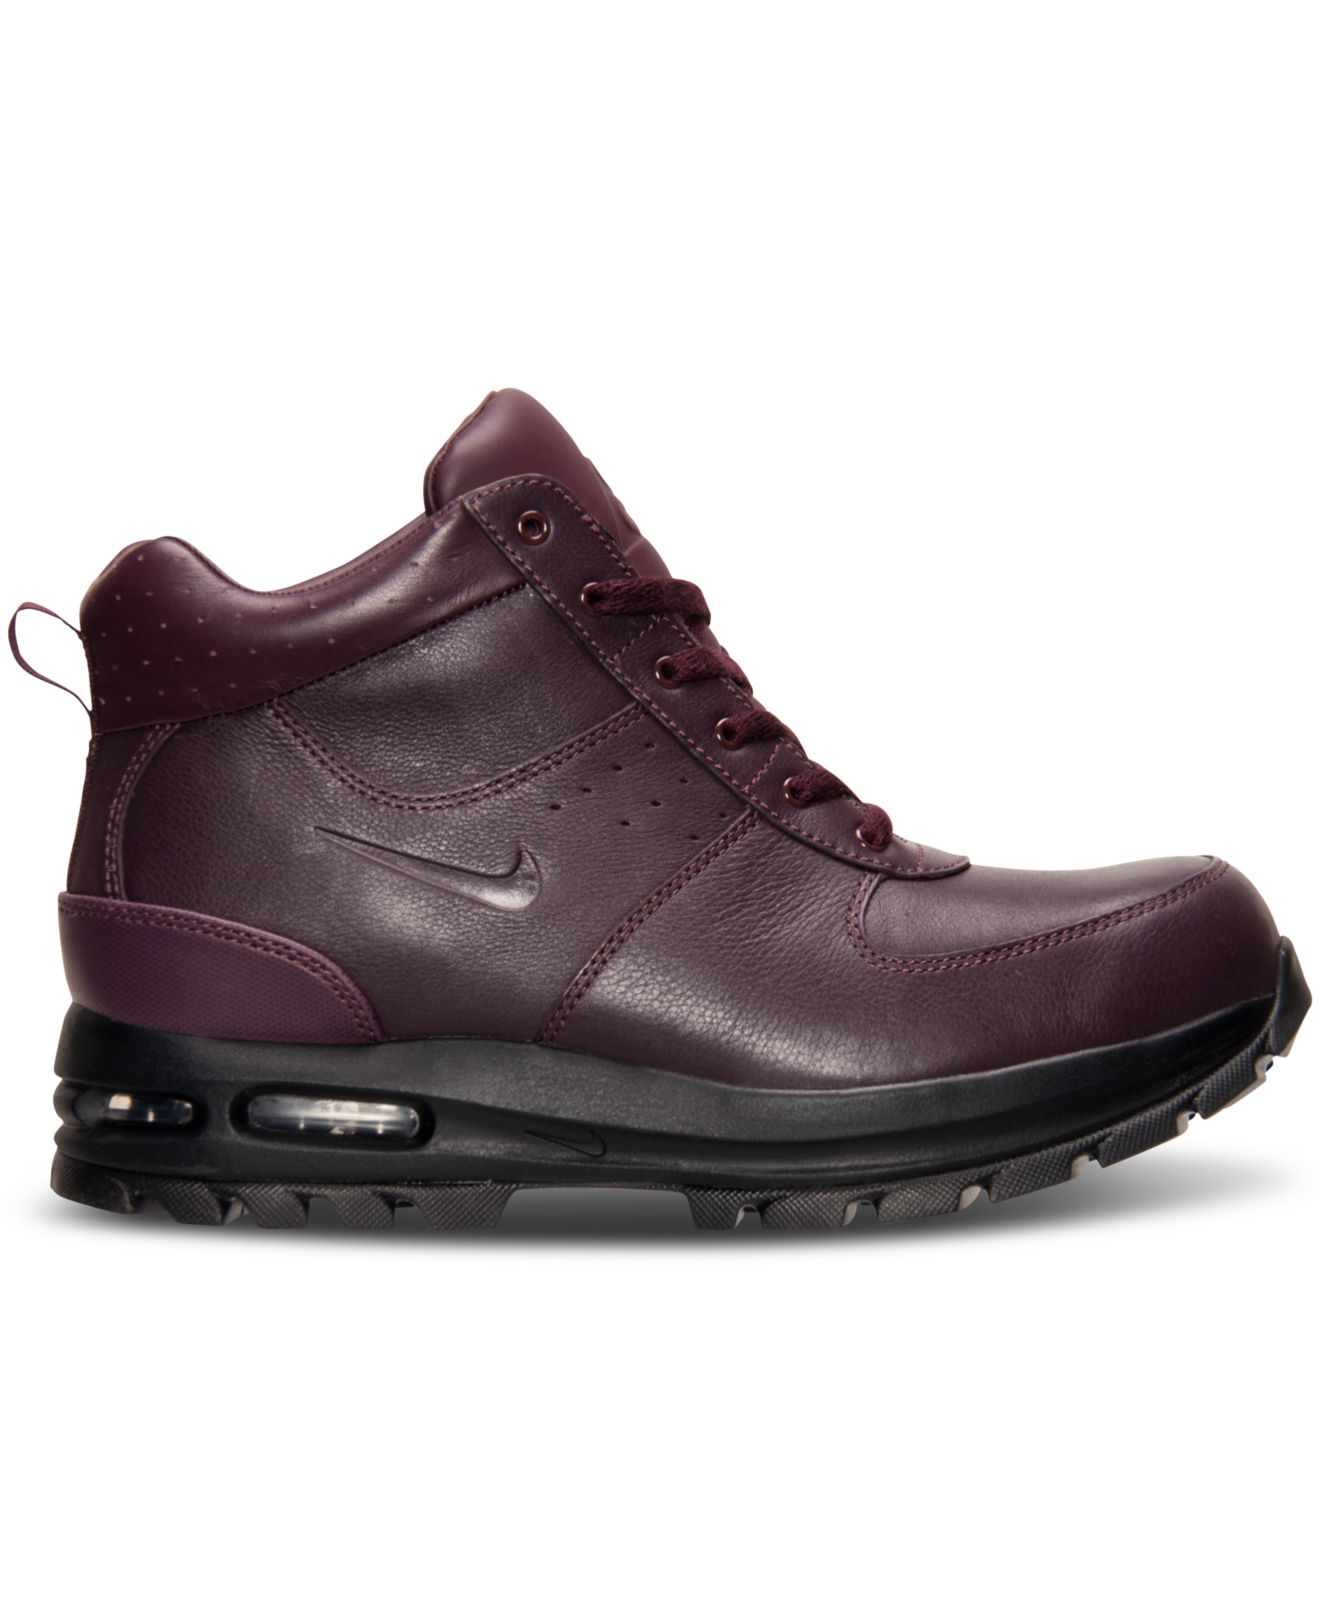 nike s air max goaterra boots from finish line in